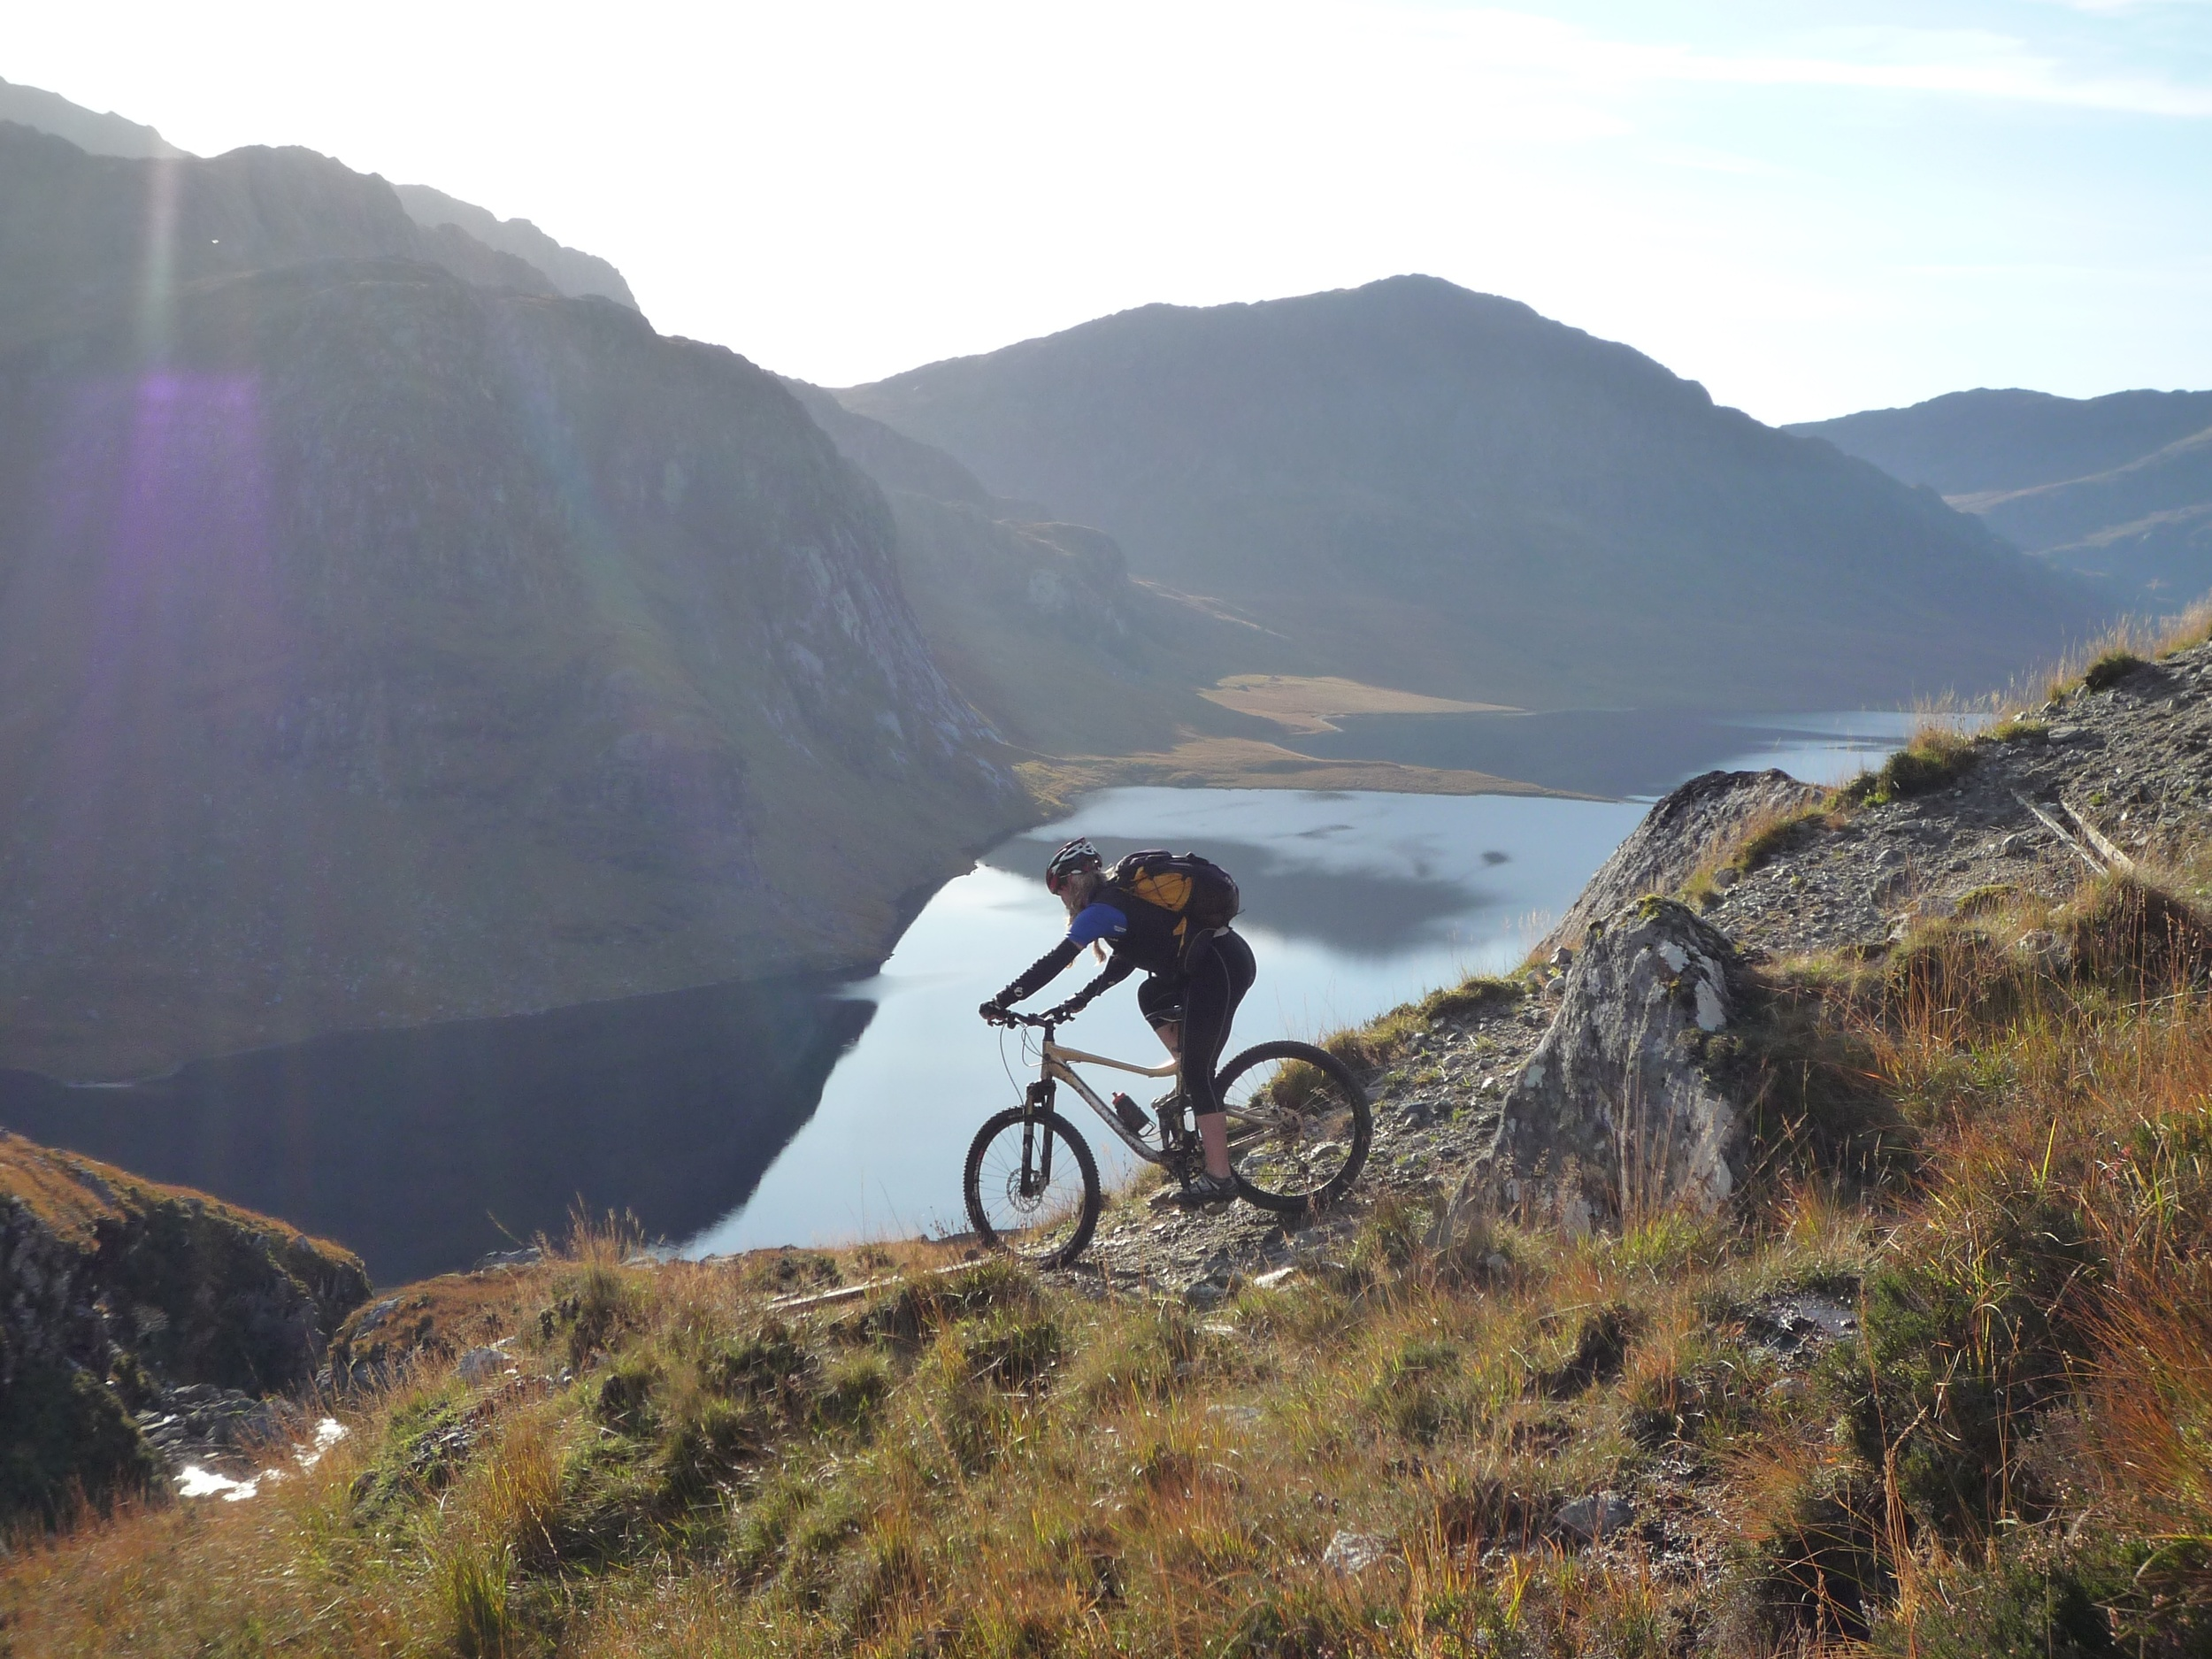 That tight switchback turn on another day, on a different bike and in another life. Photo courtesy of Ferga Perry